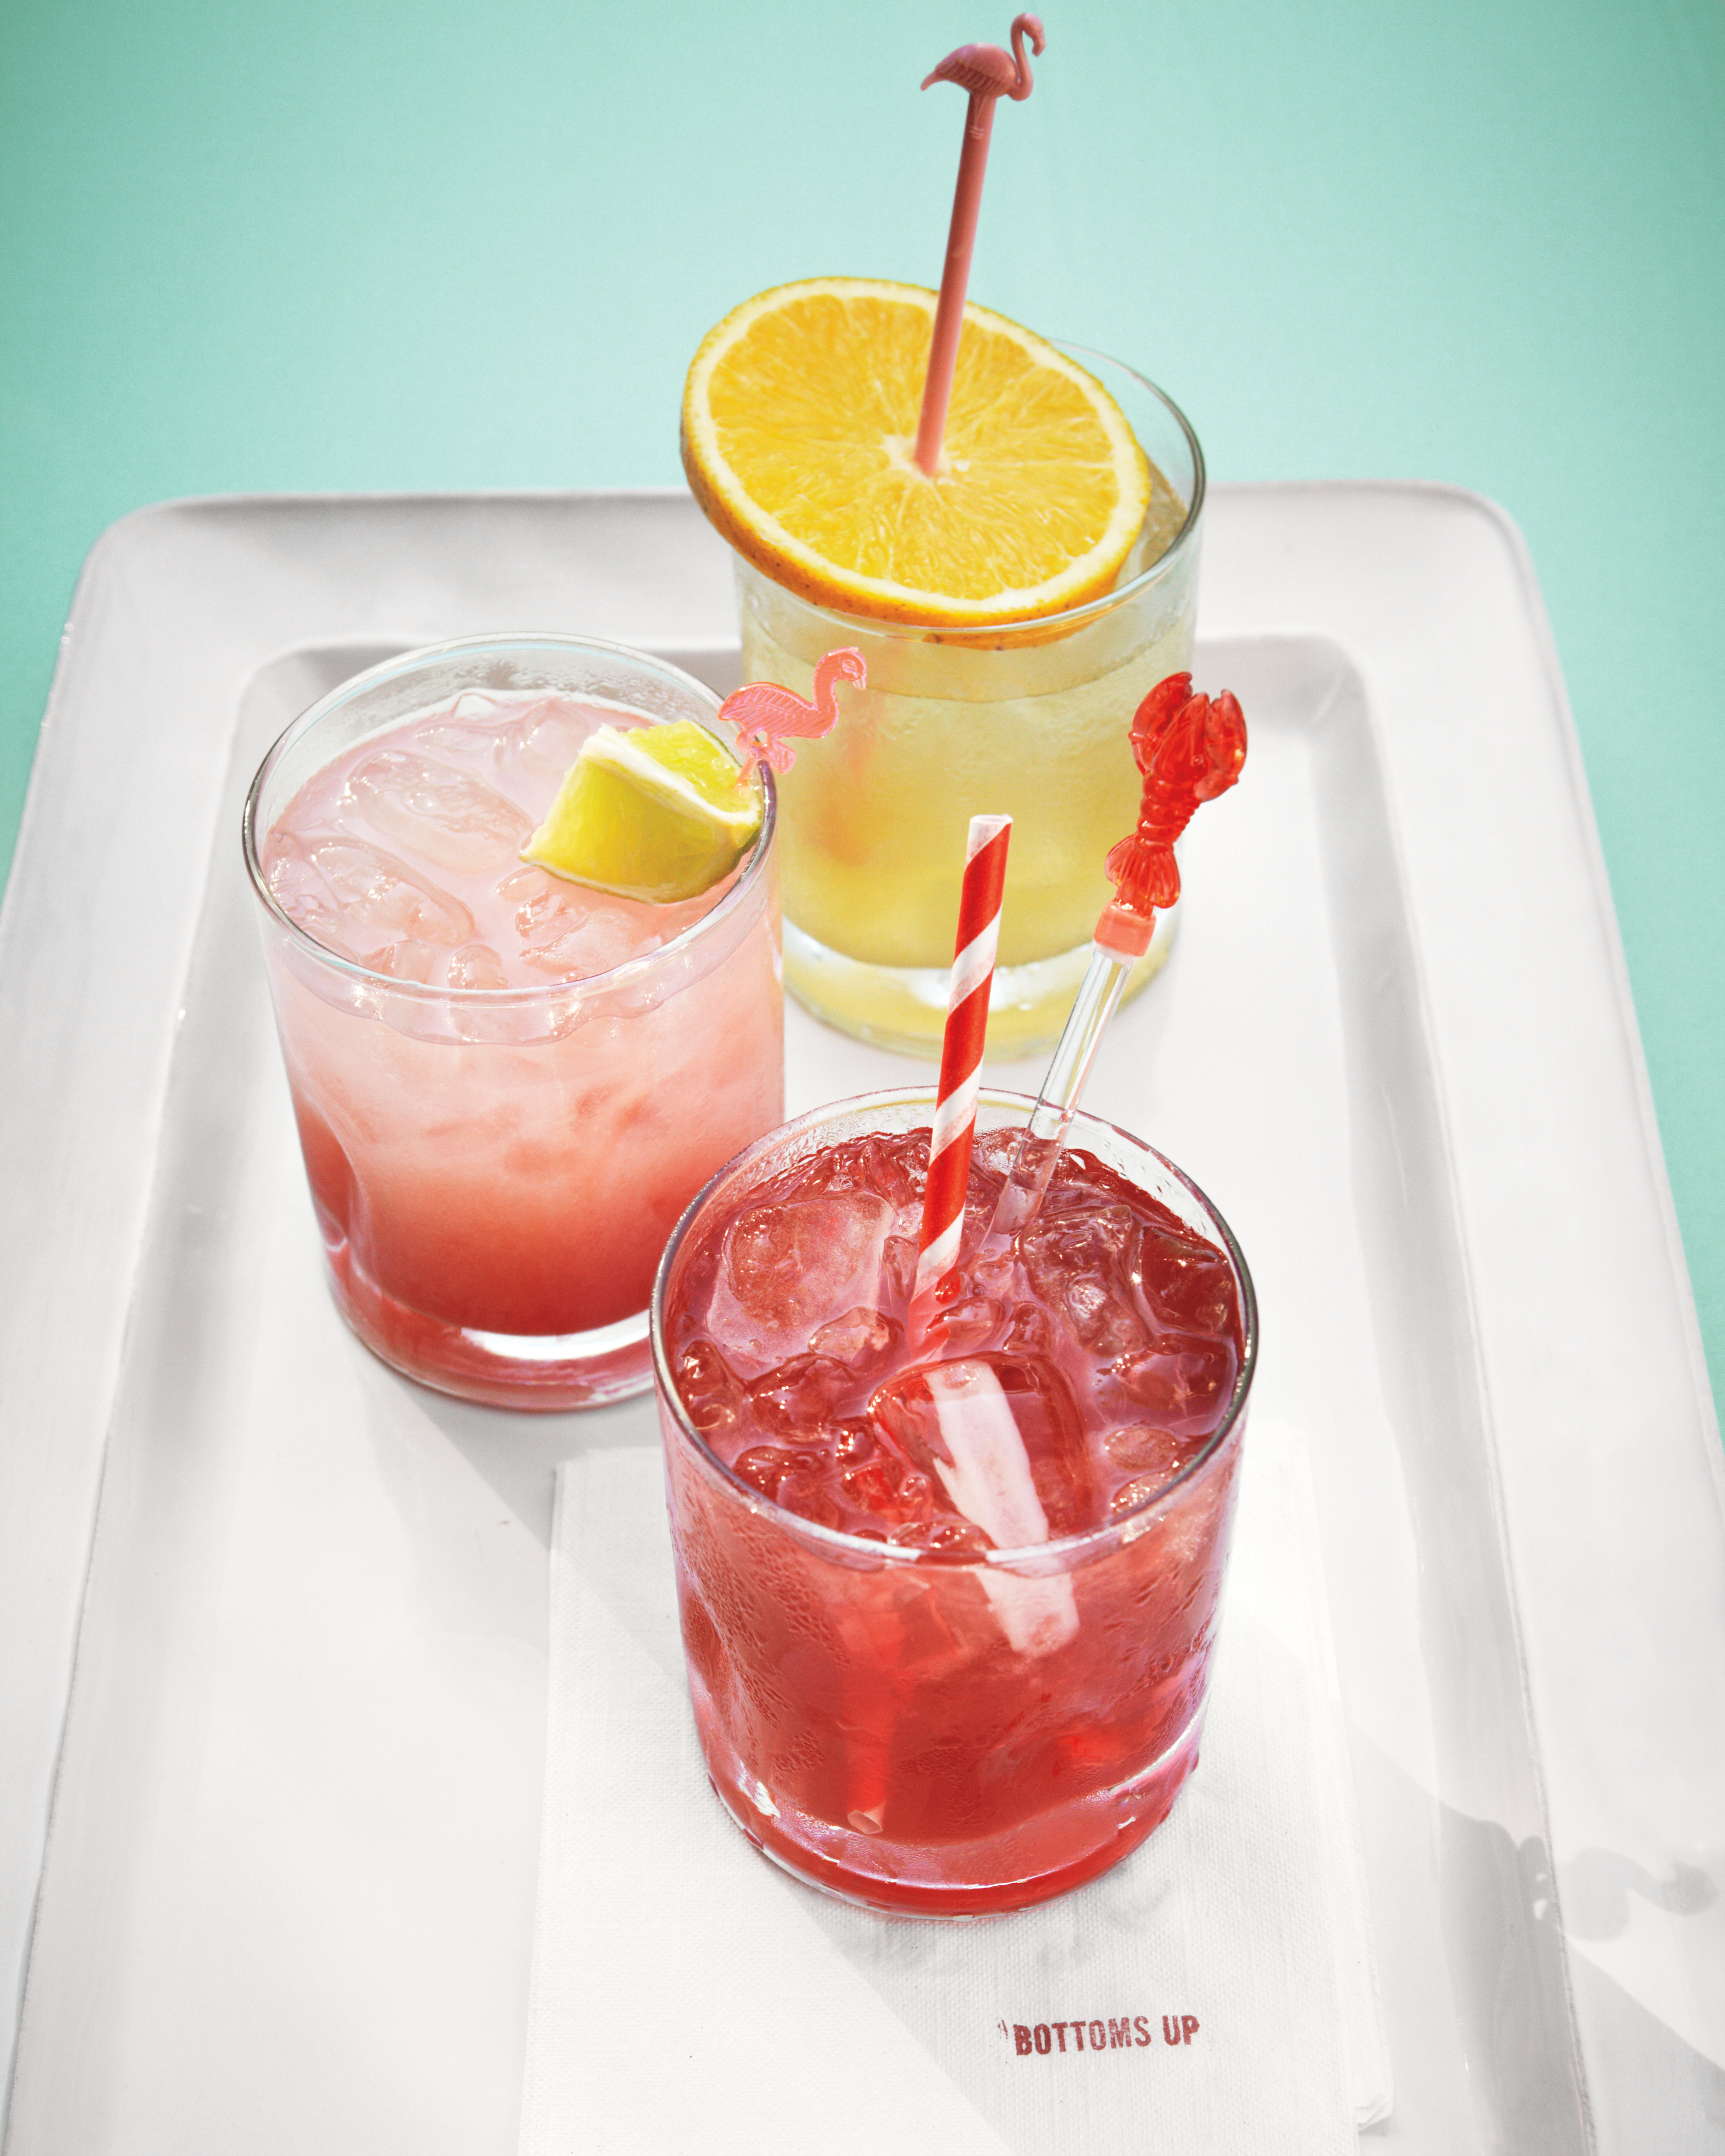 signaturecocktails1078-mwd1095924.jpg